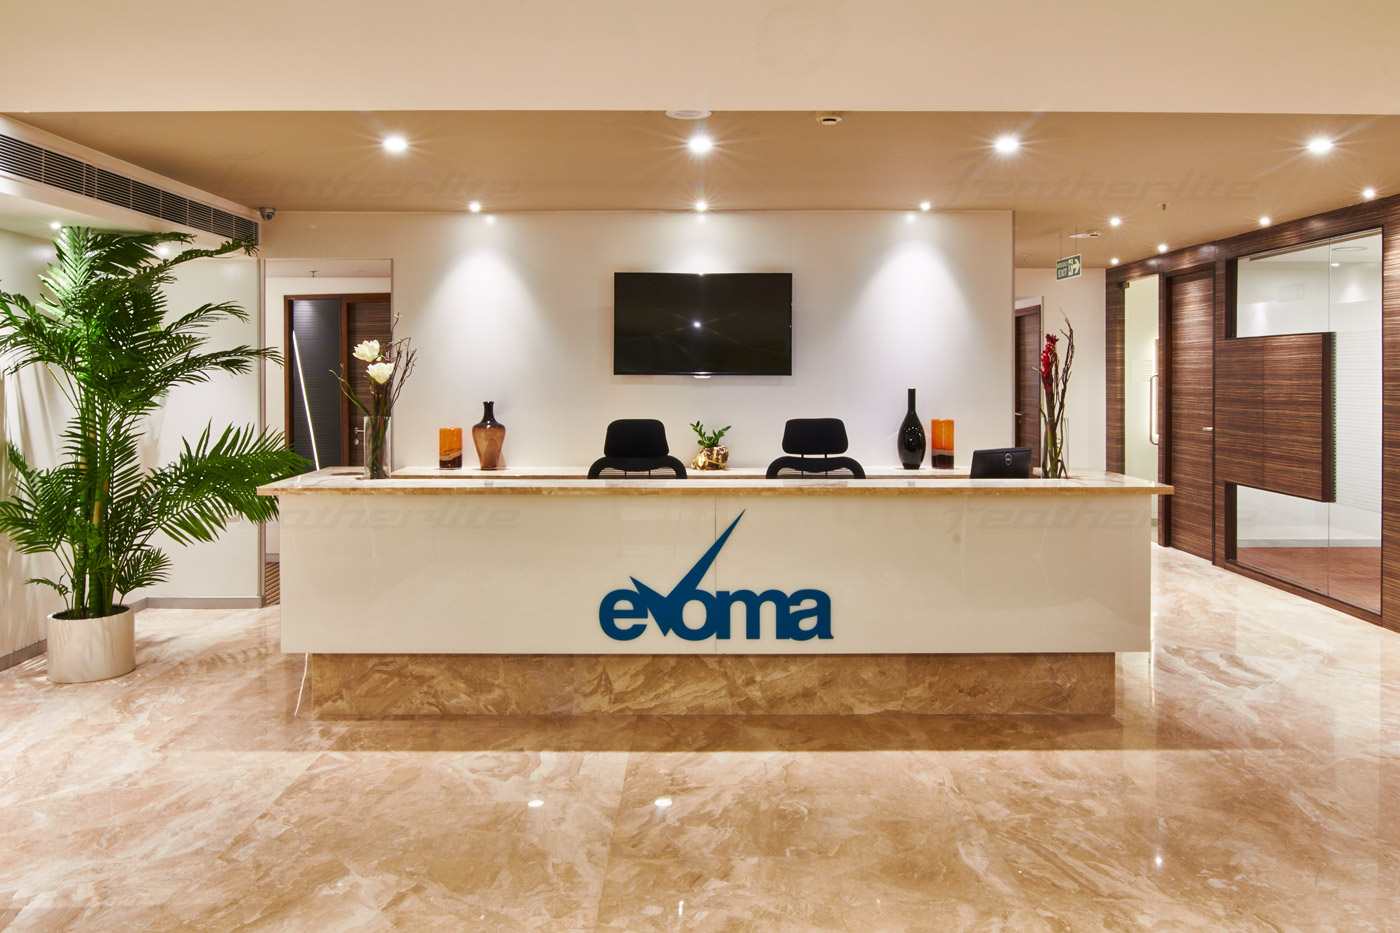 Evoma address Marathahalli